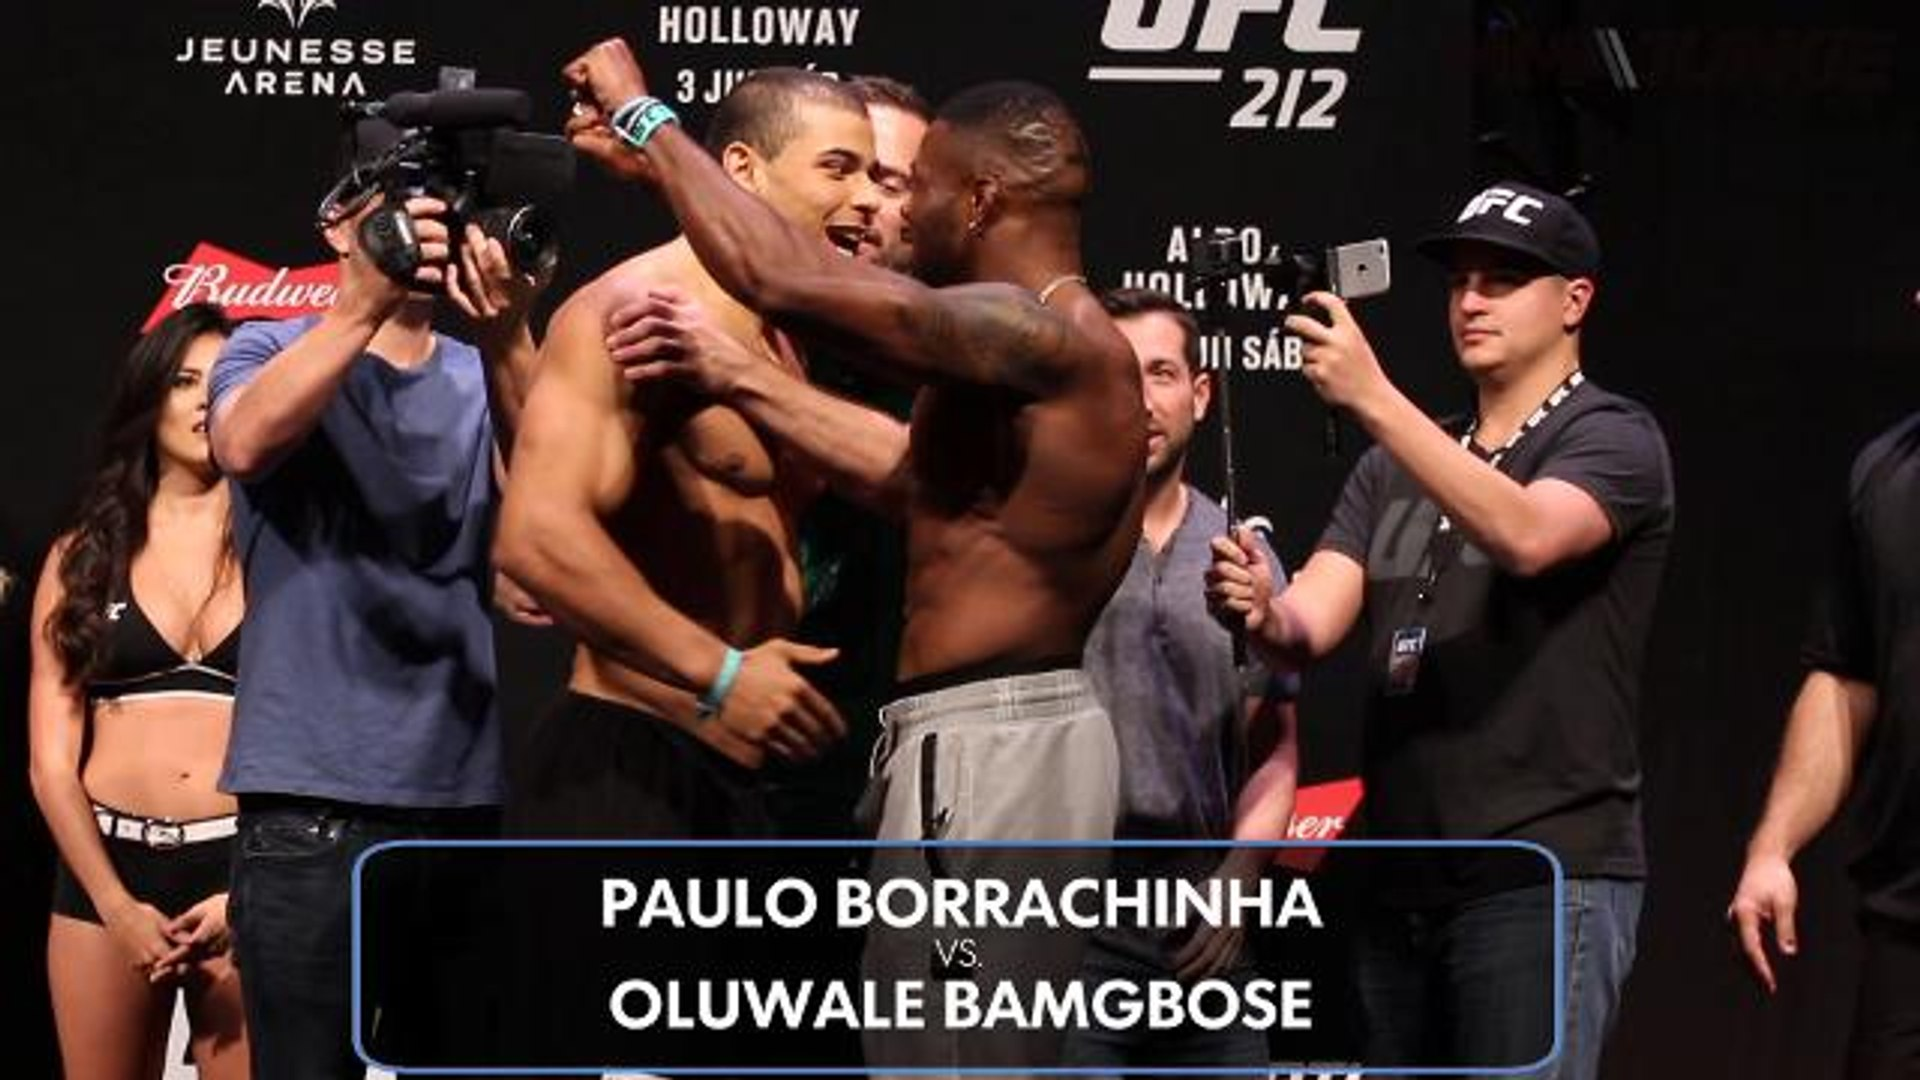 Paulo Borrachinha and Oluwale Bamgbose scrap at UFC 212 ceremonial weigh-ins